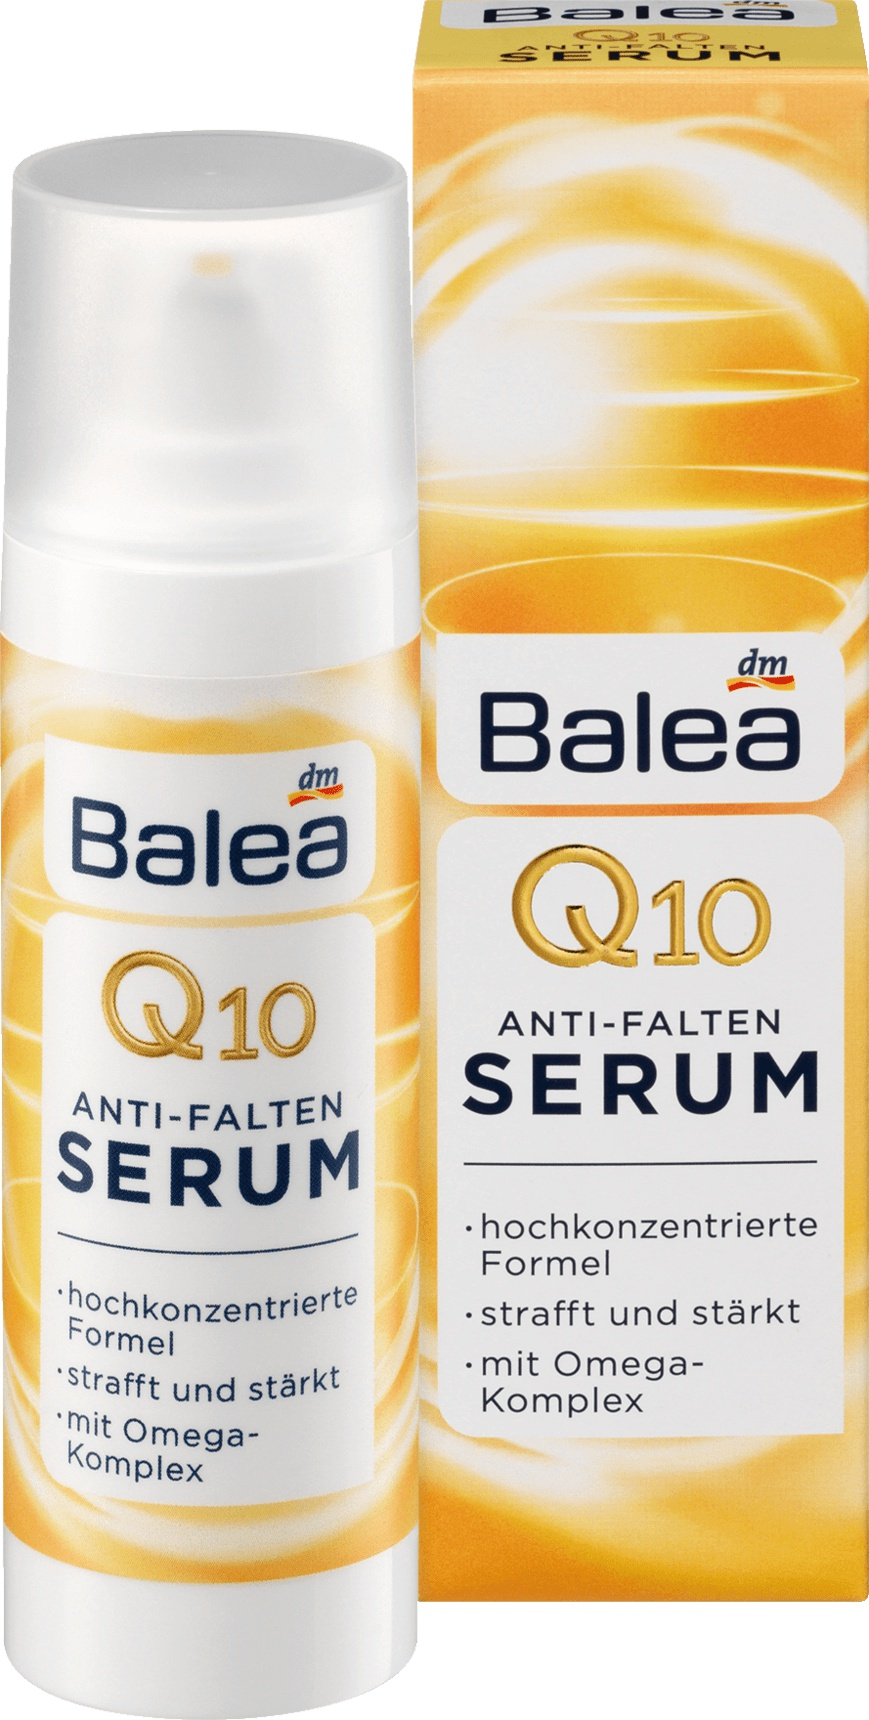 Balea Q10 Anti-Falten Serum